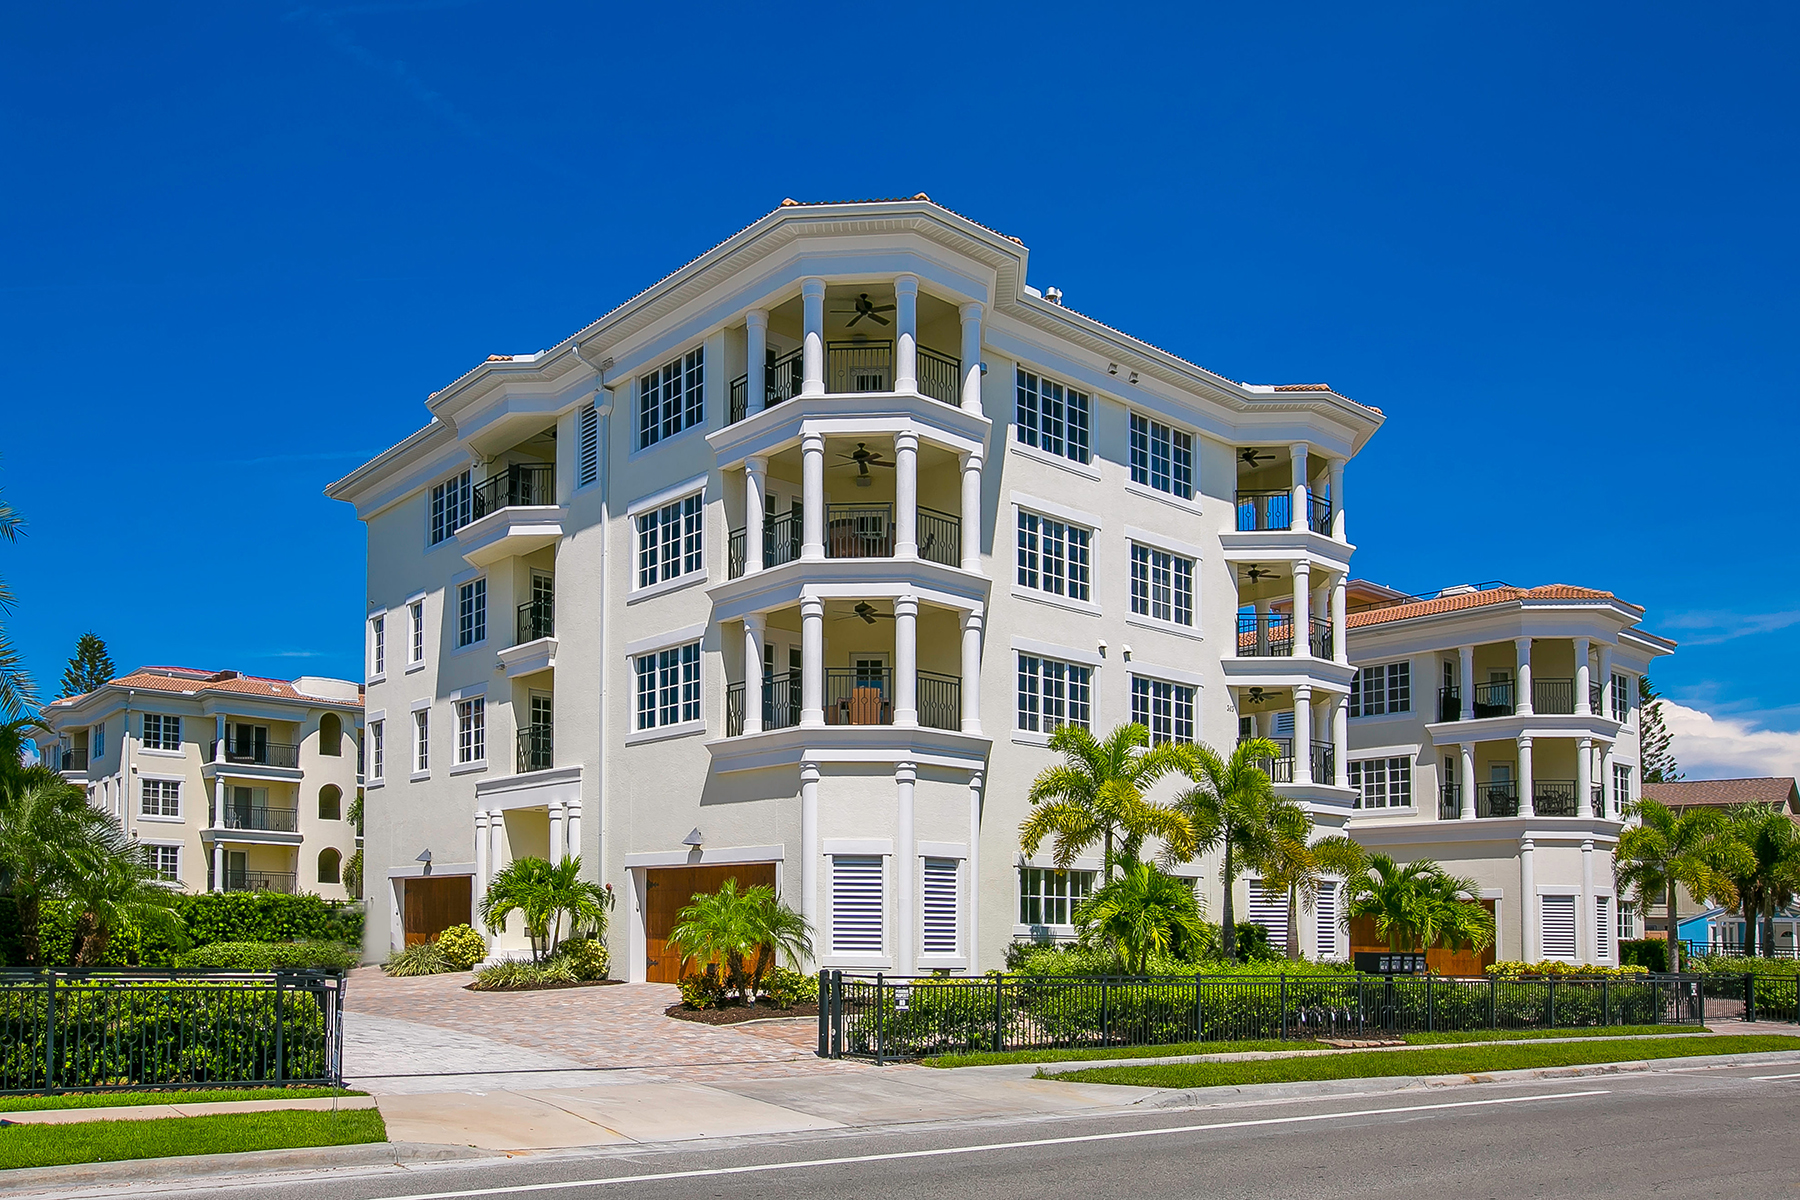 Condominium for Sale at SIESTA KEY 309 Beach Rd 309-S1 Sarasota, Florida, 34242 United States